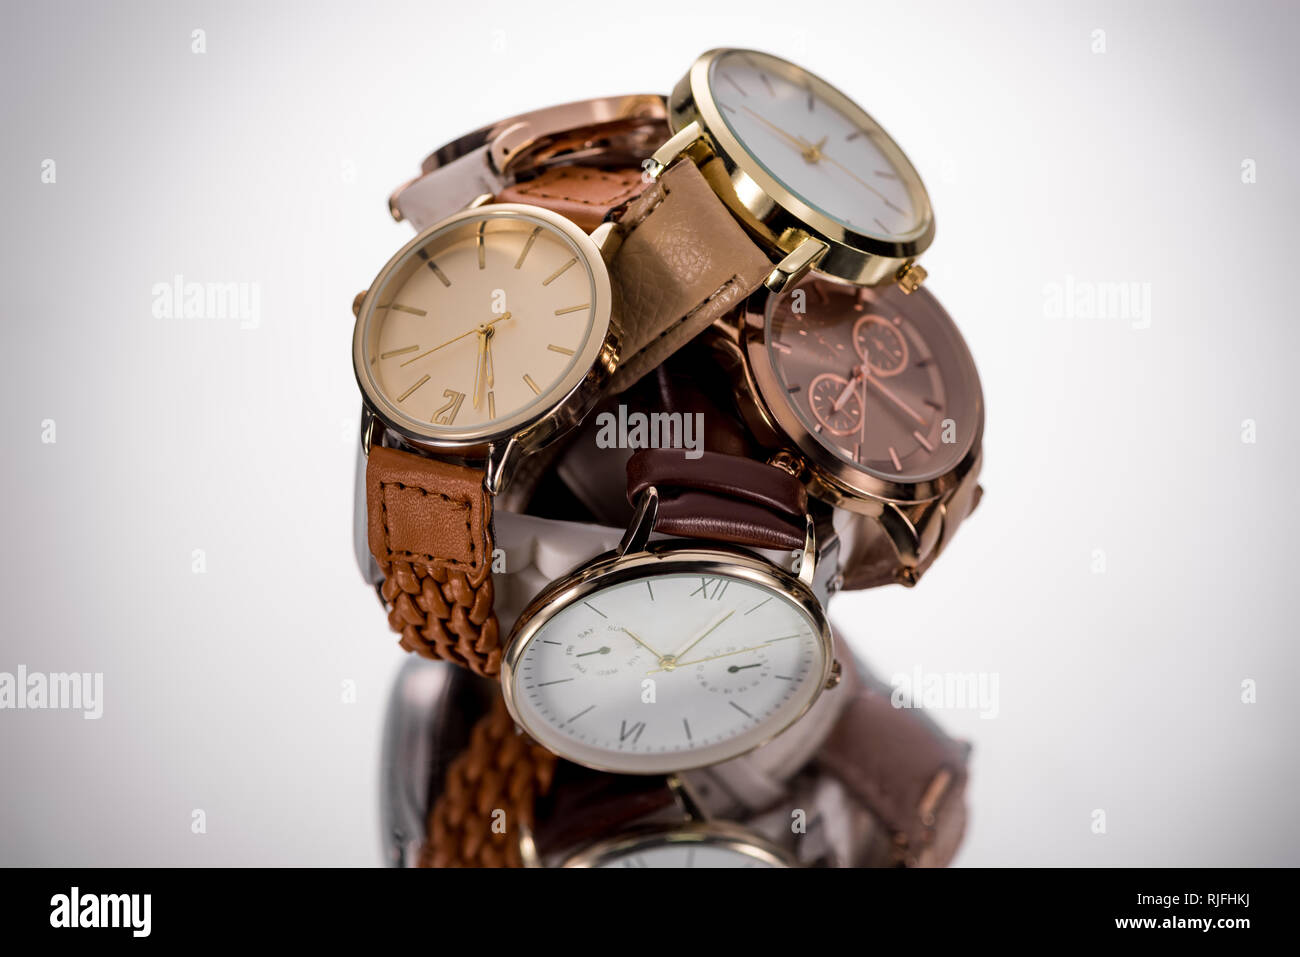 selective focus of elegant wristwatches on grey background - Stock Image